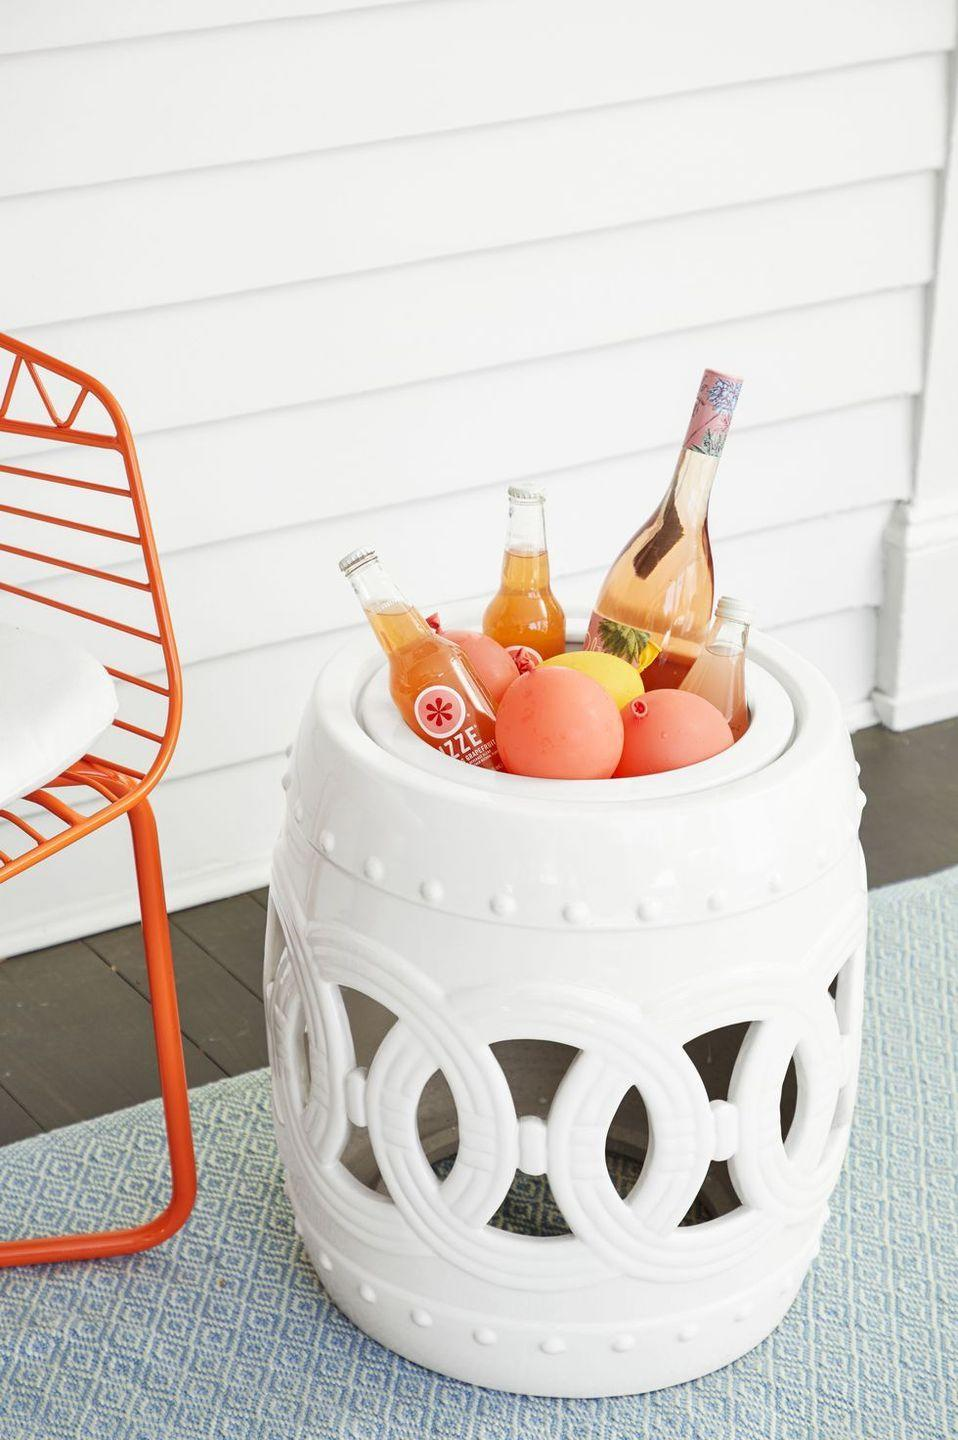 <p>Take a garden stool — bird baths work too! — and fill it with frozen water balloons for a party-ready cooler. They'll melt slower than traditional ice cubes, so guests won't have to dunk their hands in water to refuel. </p>